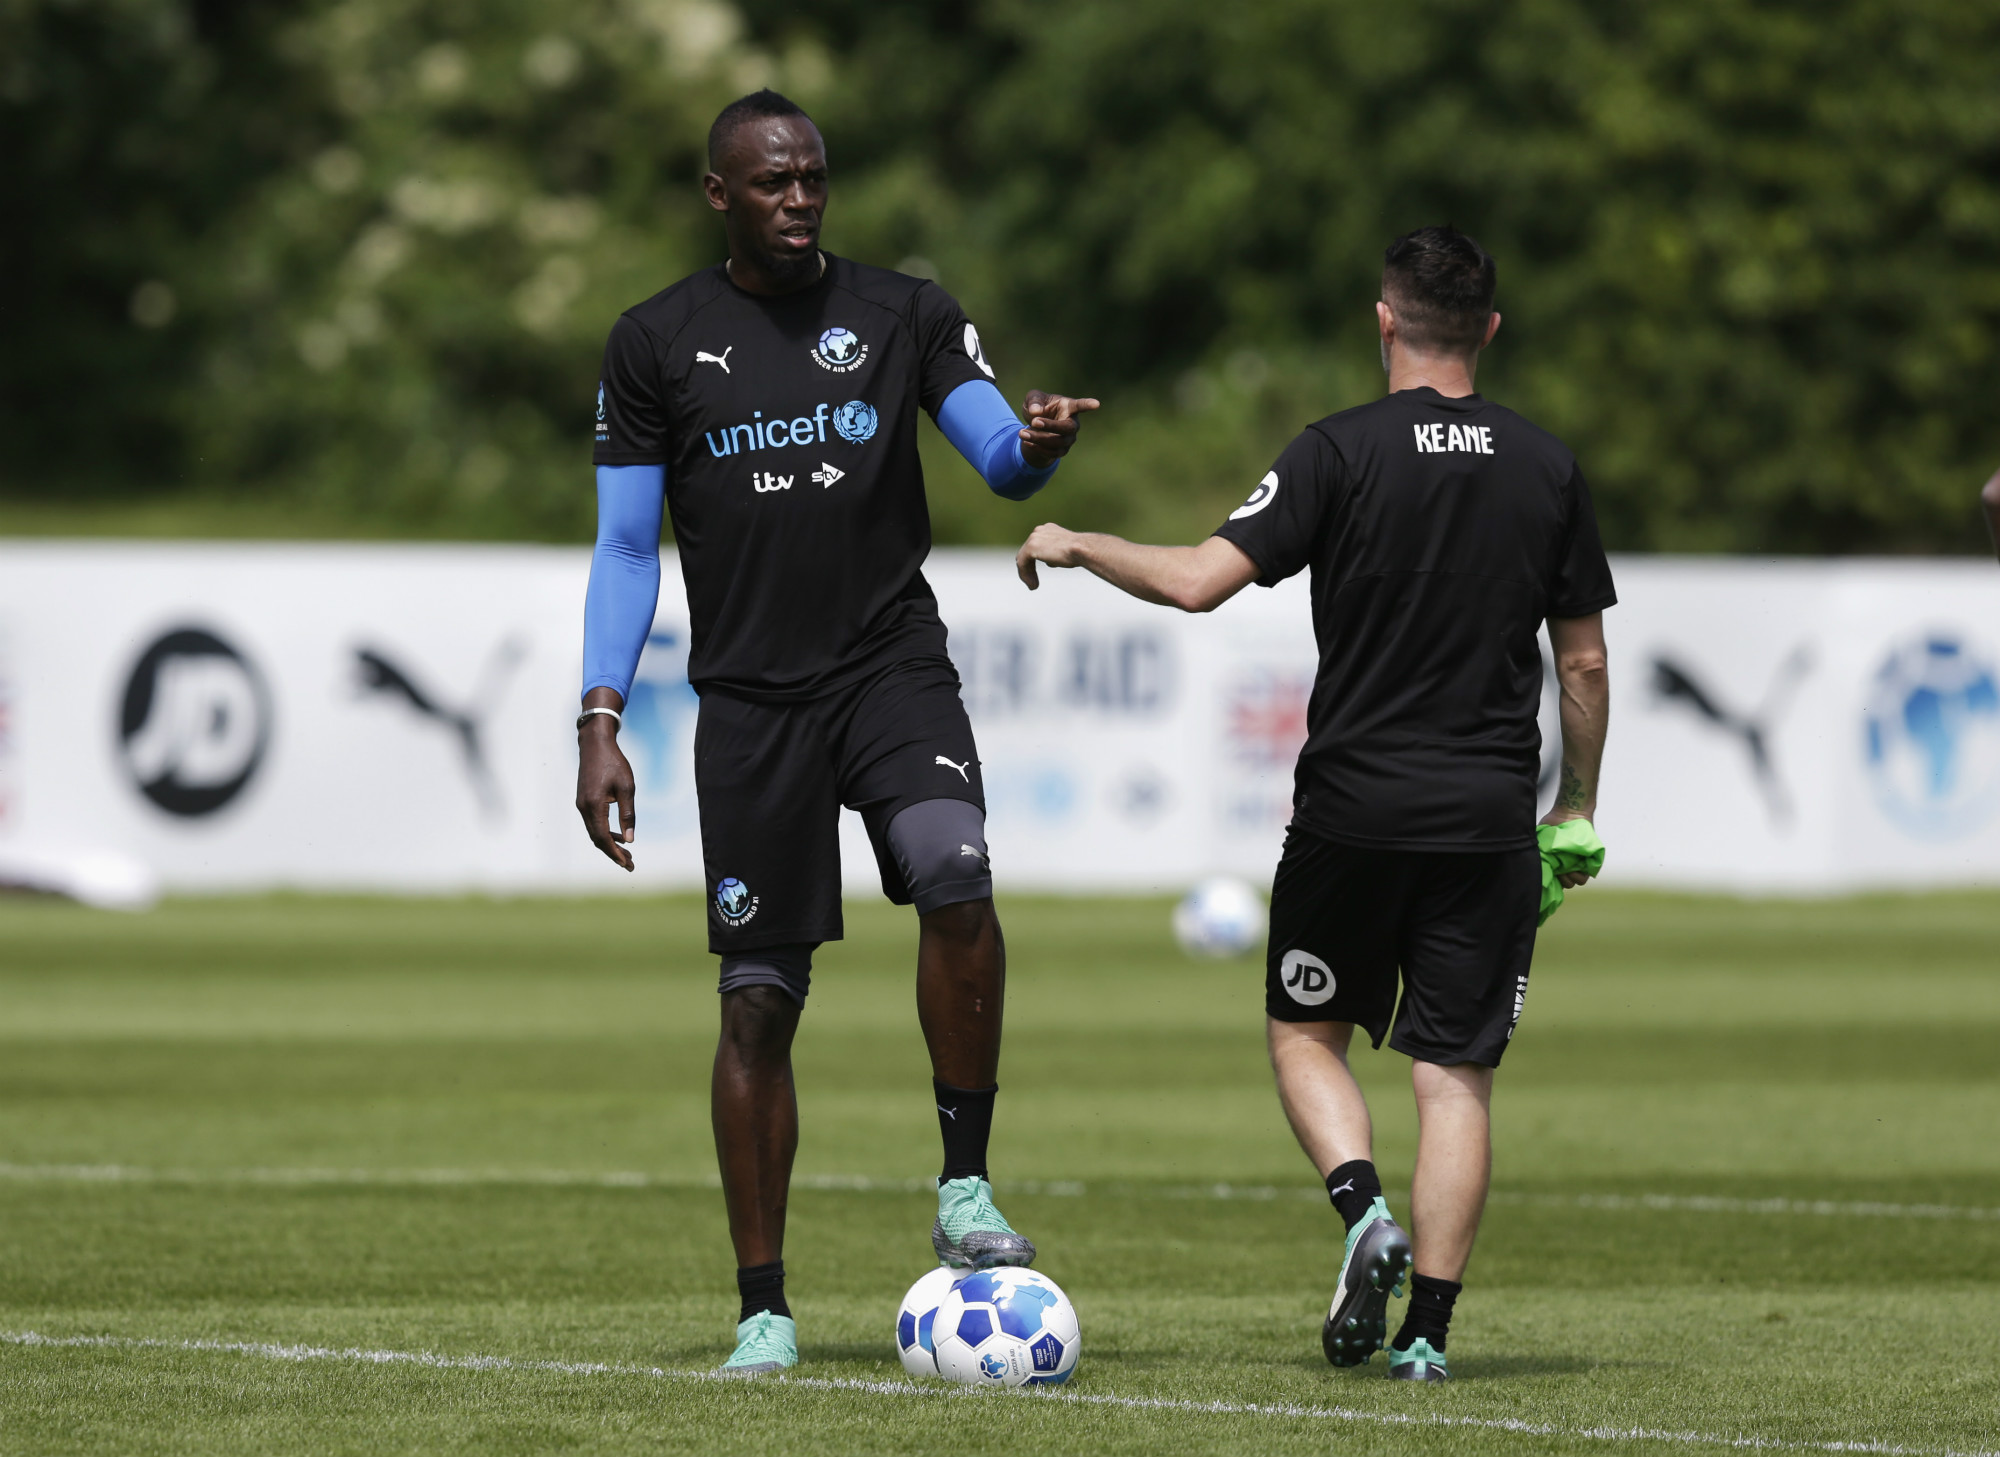 Bolt trains with former Premier League striker Robbie Keane